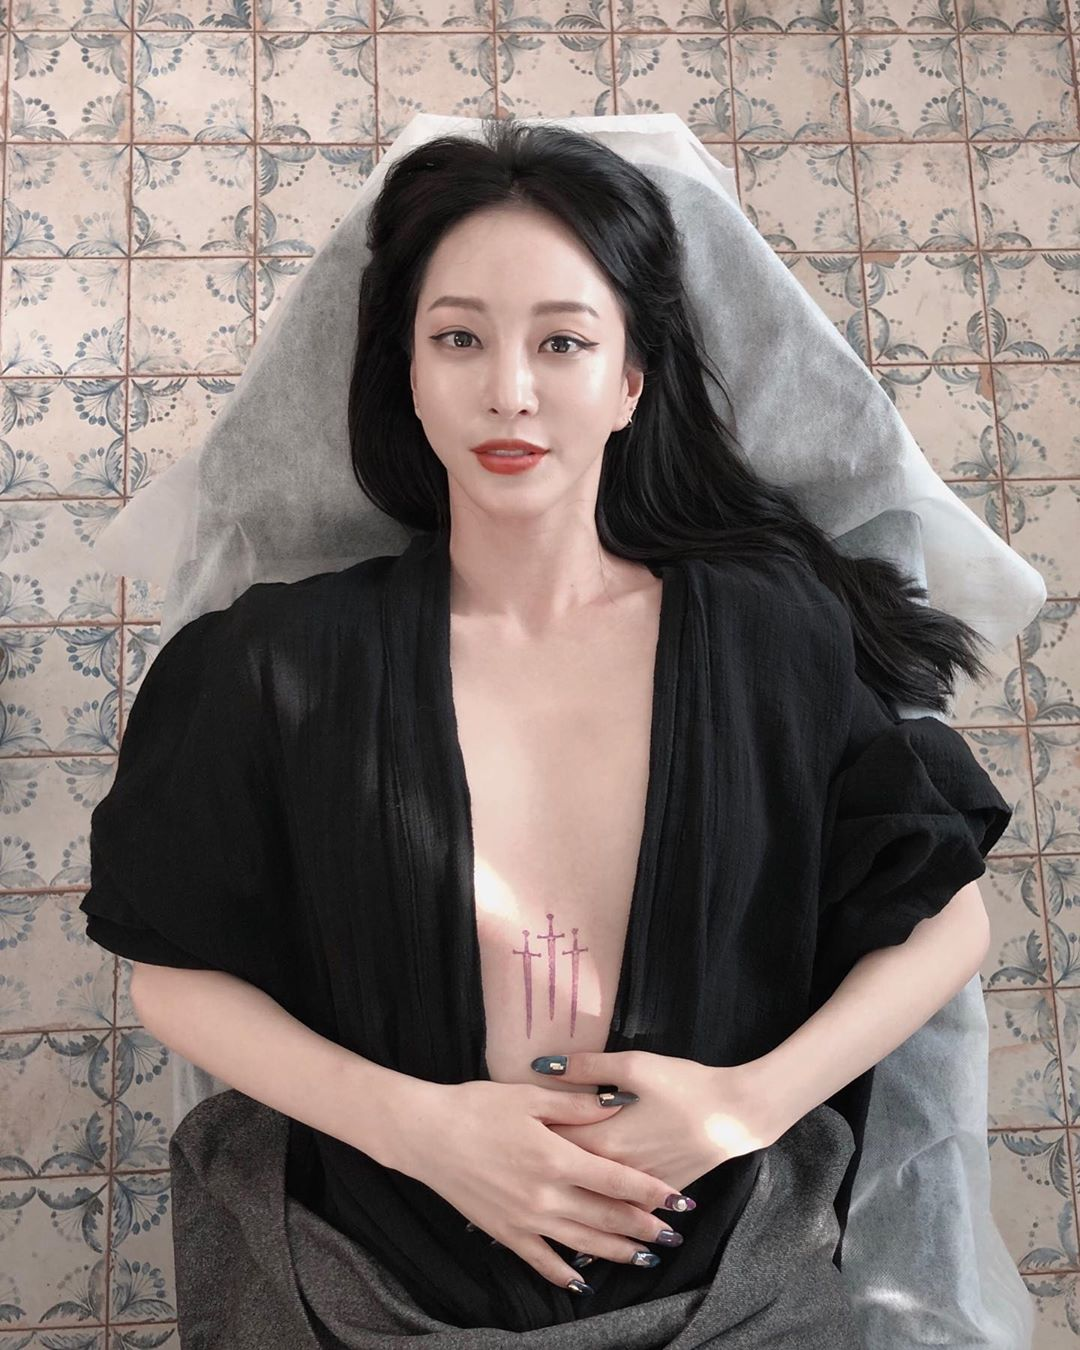 Showing Off Tattoos on Her Chest, Han Ye Seul Reap Criticized from Netizens